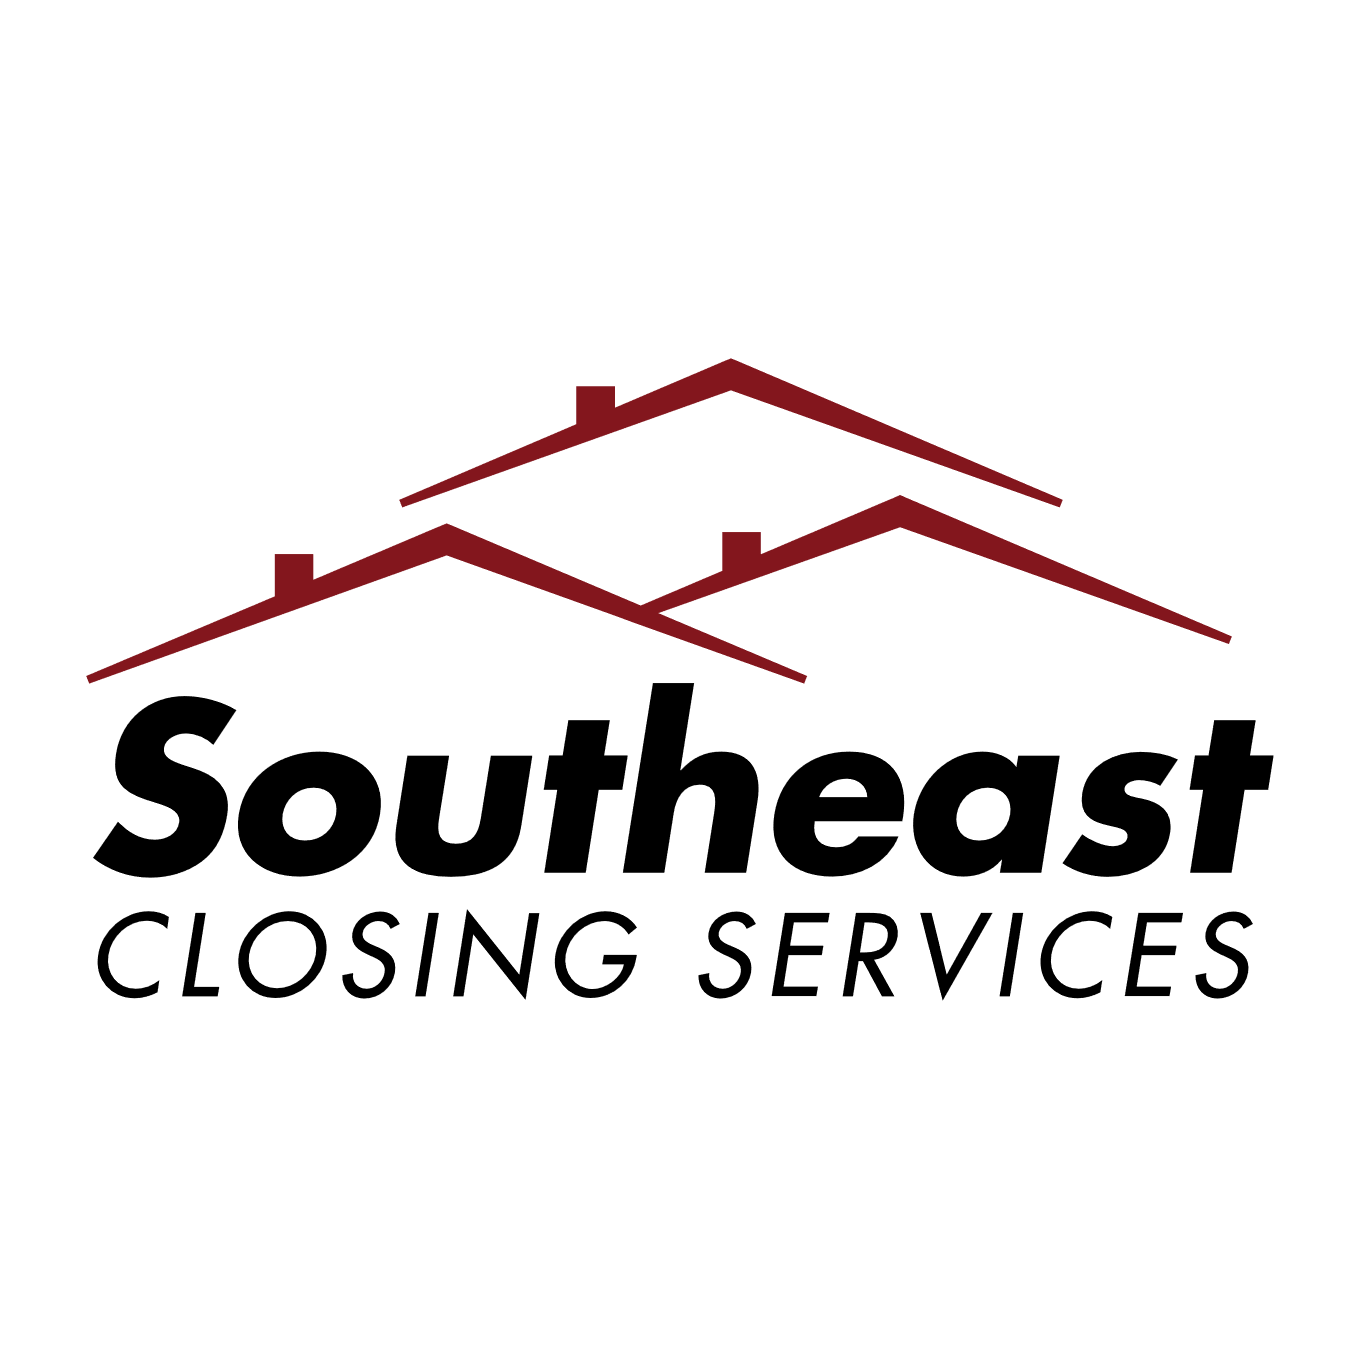 Southeast Closing Services Tampa Office